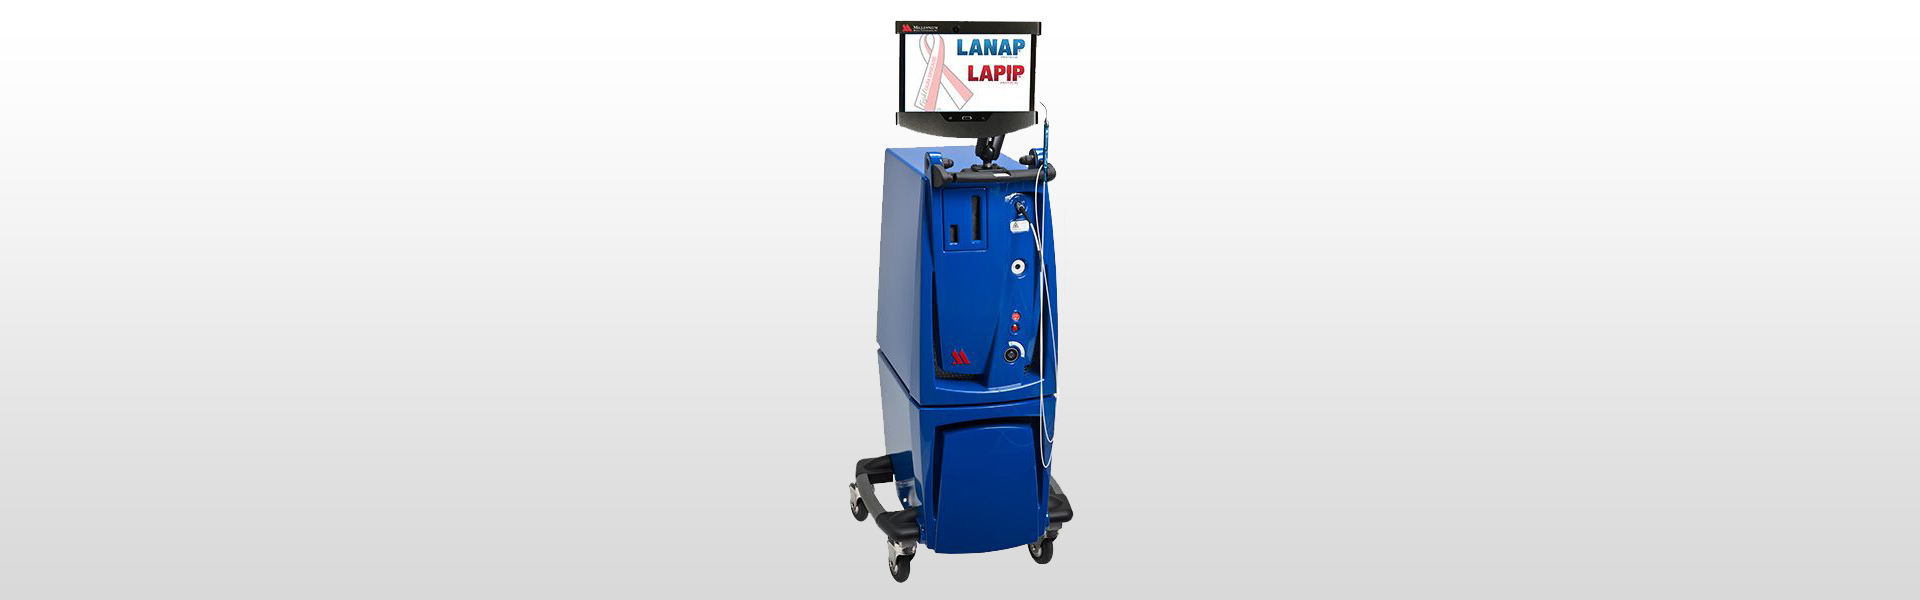 Advanced laser therapy for gum disease-LANAP